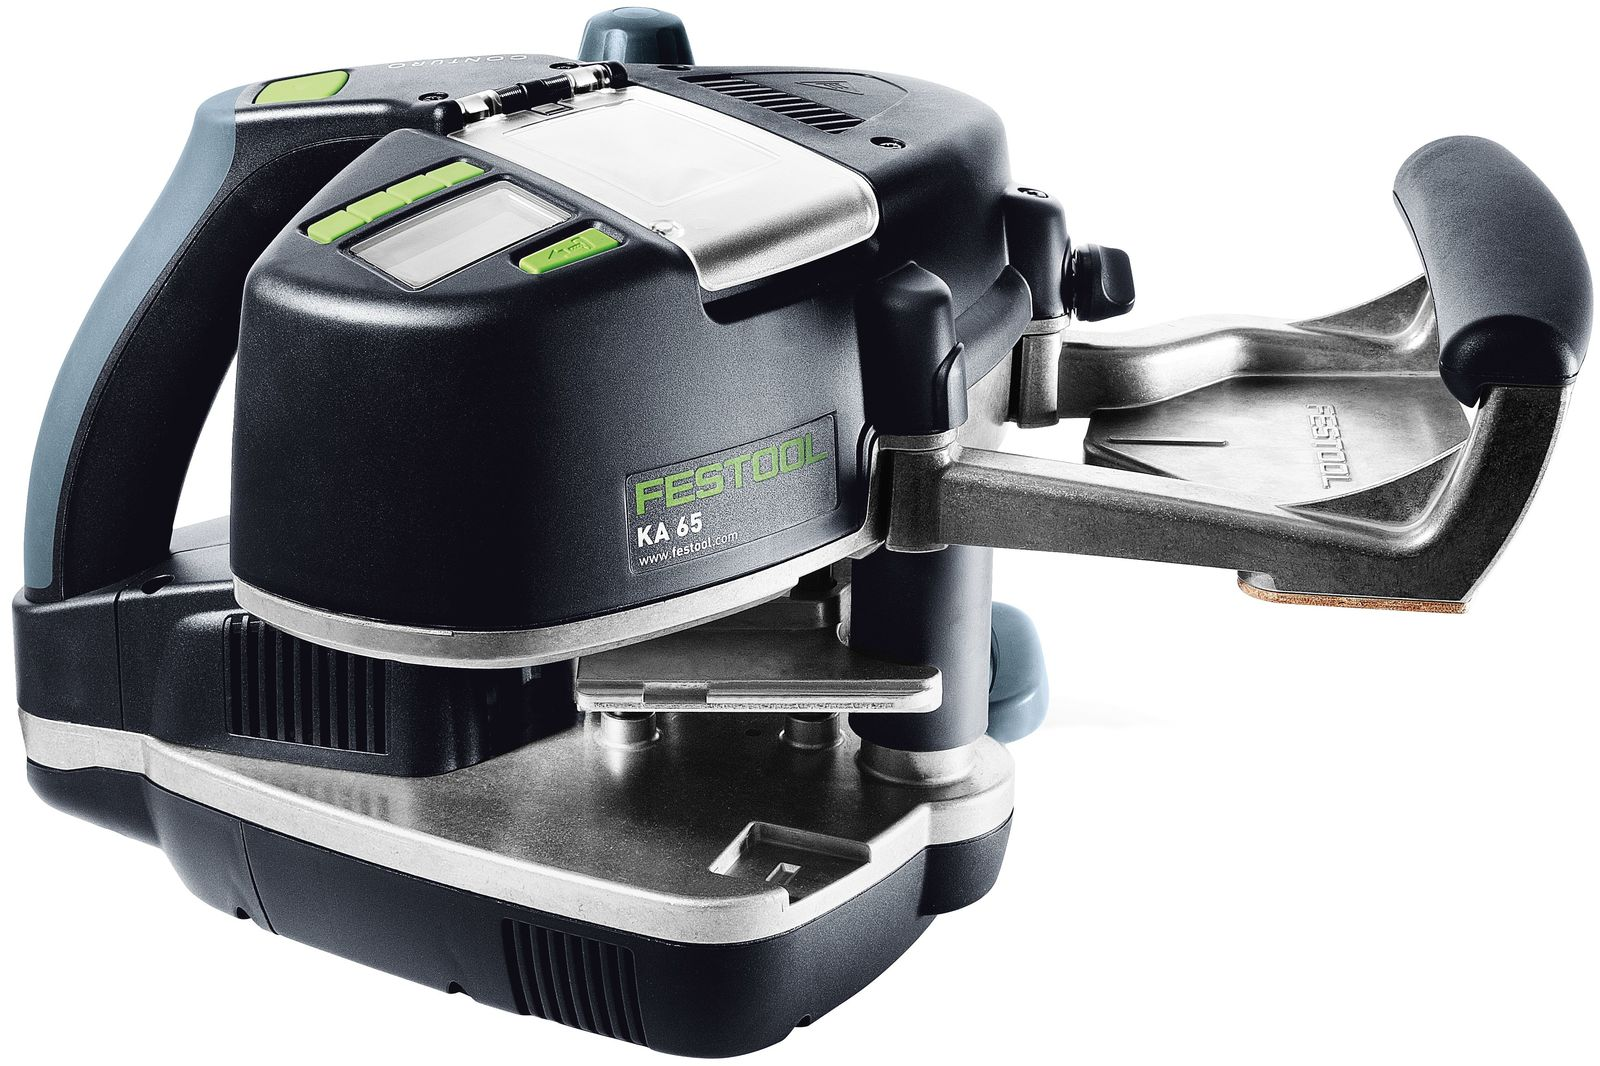 https://www.cesafonline.it/immagini_articoli/06-07-2017/bordatrice-conturo-ka-65-plus-festool.jpg